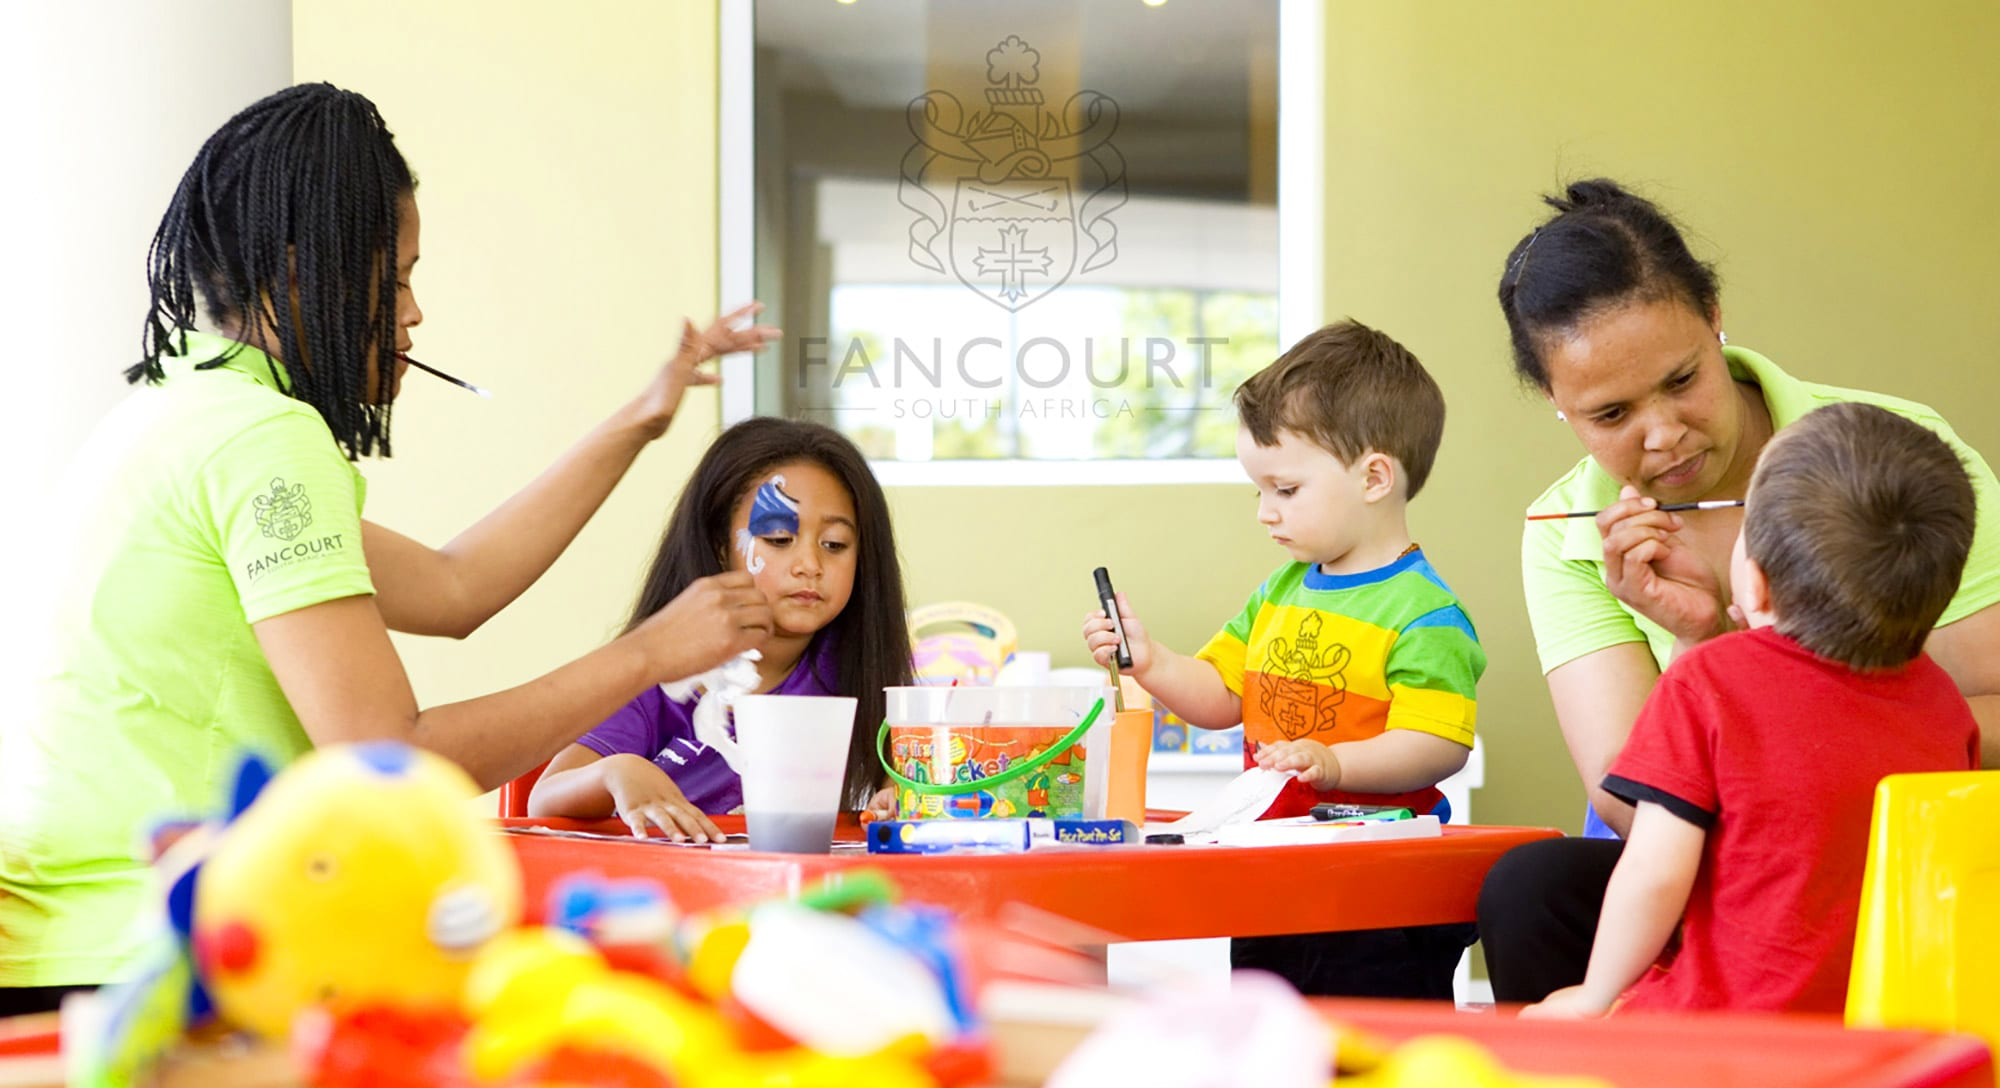 The amazing kids' club at the Fancourt Hotel in South Africa